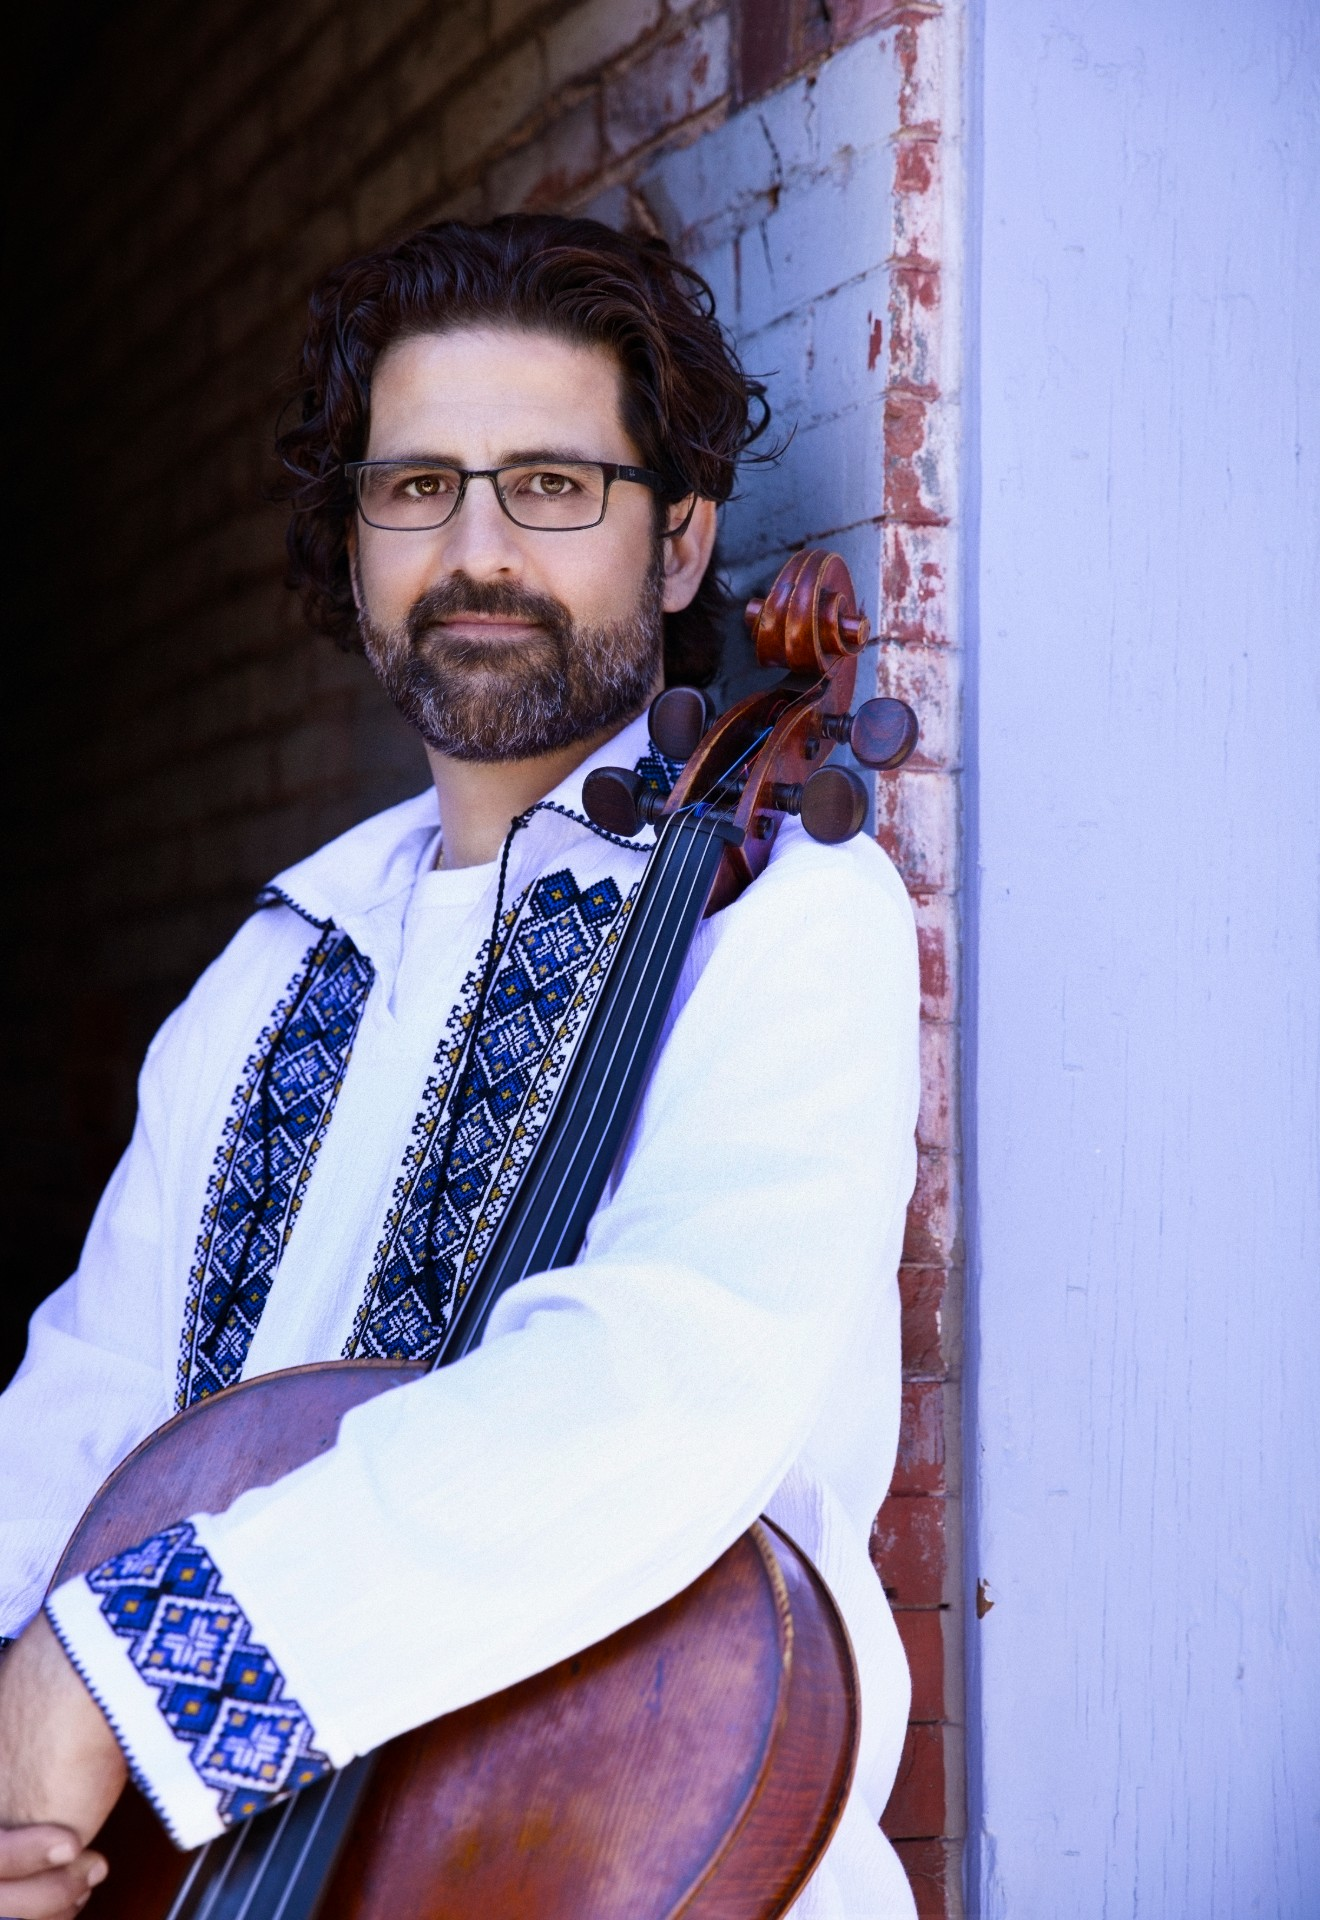 Amit Peled, cello - Israeli-American cellist, conductor, and pedagogue Amit Peled, a musician of profound artistry and charismatic stage presence, is acclaimed worldwide as one of the most exciting and virtuosic instrumentalists on the concert stage today.Highlights of Peled's 2019-2020 season include over twenty concerto appearances around the world; recitals with pianist Noreen Polera and Alon Goldstein; the world premiere of Joshua Bornfield's Concerto for Cello and Choir with the Händel Choir of Baltimore; Haydn's Cello Concerto at the Silver Lyre International Festival of Chamber Music in Saint Petersburg, Russia; the Elgar Cello Concerto with the Fundación de Orquestas Juveniles e Infantiles de Chile; and more. Peled's conducting engagements include debuts with CityMusic Cleveland and the Peabody Symphony Orchestra as well as leading his own Mount Vernon Virtuosi. Peled also performs this season with the Goldstein-Peled-Fiterstein Trio in Washington, D.C.; Yellow Springs, Ohio; and New York, NY.Peled is founder of the Amit Peled Cello Gang, a touring group composed of students from his studio at the Peabody Institute, where he has taught since 2003 and was one of the youngest professors ever hired by a major conservatory. Peled is also conductor and artistic director of the Mount Vernon Virtuosi, a chamber orchestra dedicated to launching the careers of recently graduated students. Peled is a founding member of the Tempest Trio with pianist Alon Goldstein and violinist Ilya Kaler.Peled's discography includes acclaimed CDs on the Naxos, Centaur, CAP, CTM Classics, and Delos labels. Upcoming album releases include a Cassado recording for Naxos and the second installment of the Bach Suites for CTM Classics. In 2017, Peled published a children's book, A Cello Named Pablo.Peled lives in Baltimore, Maryland and performs on the only known copy of the